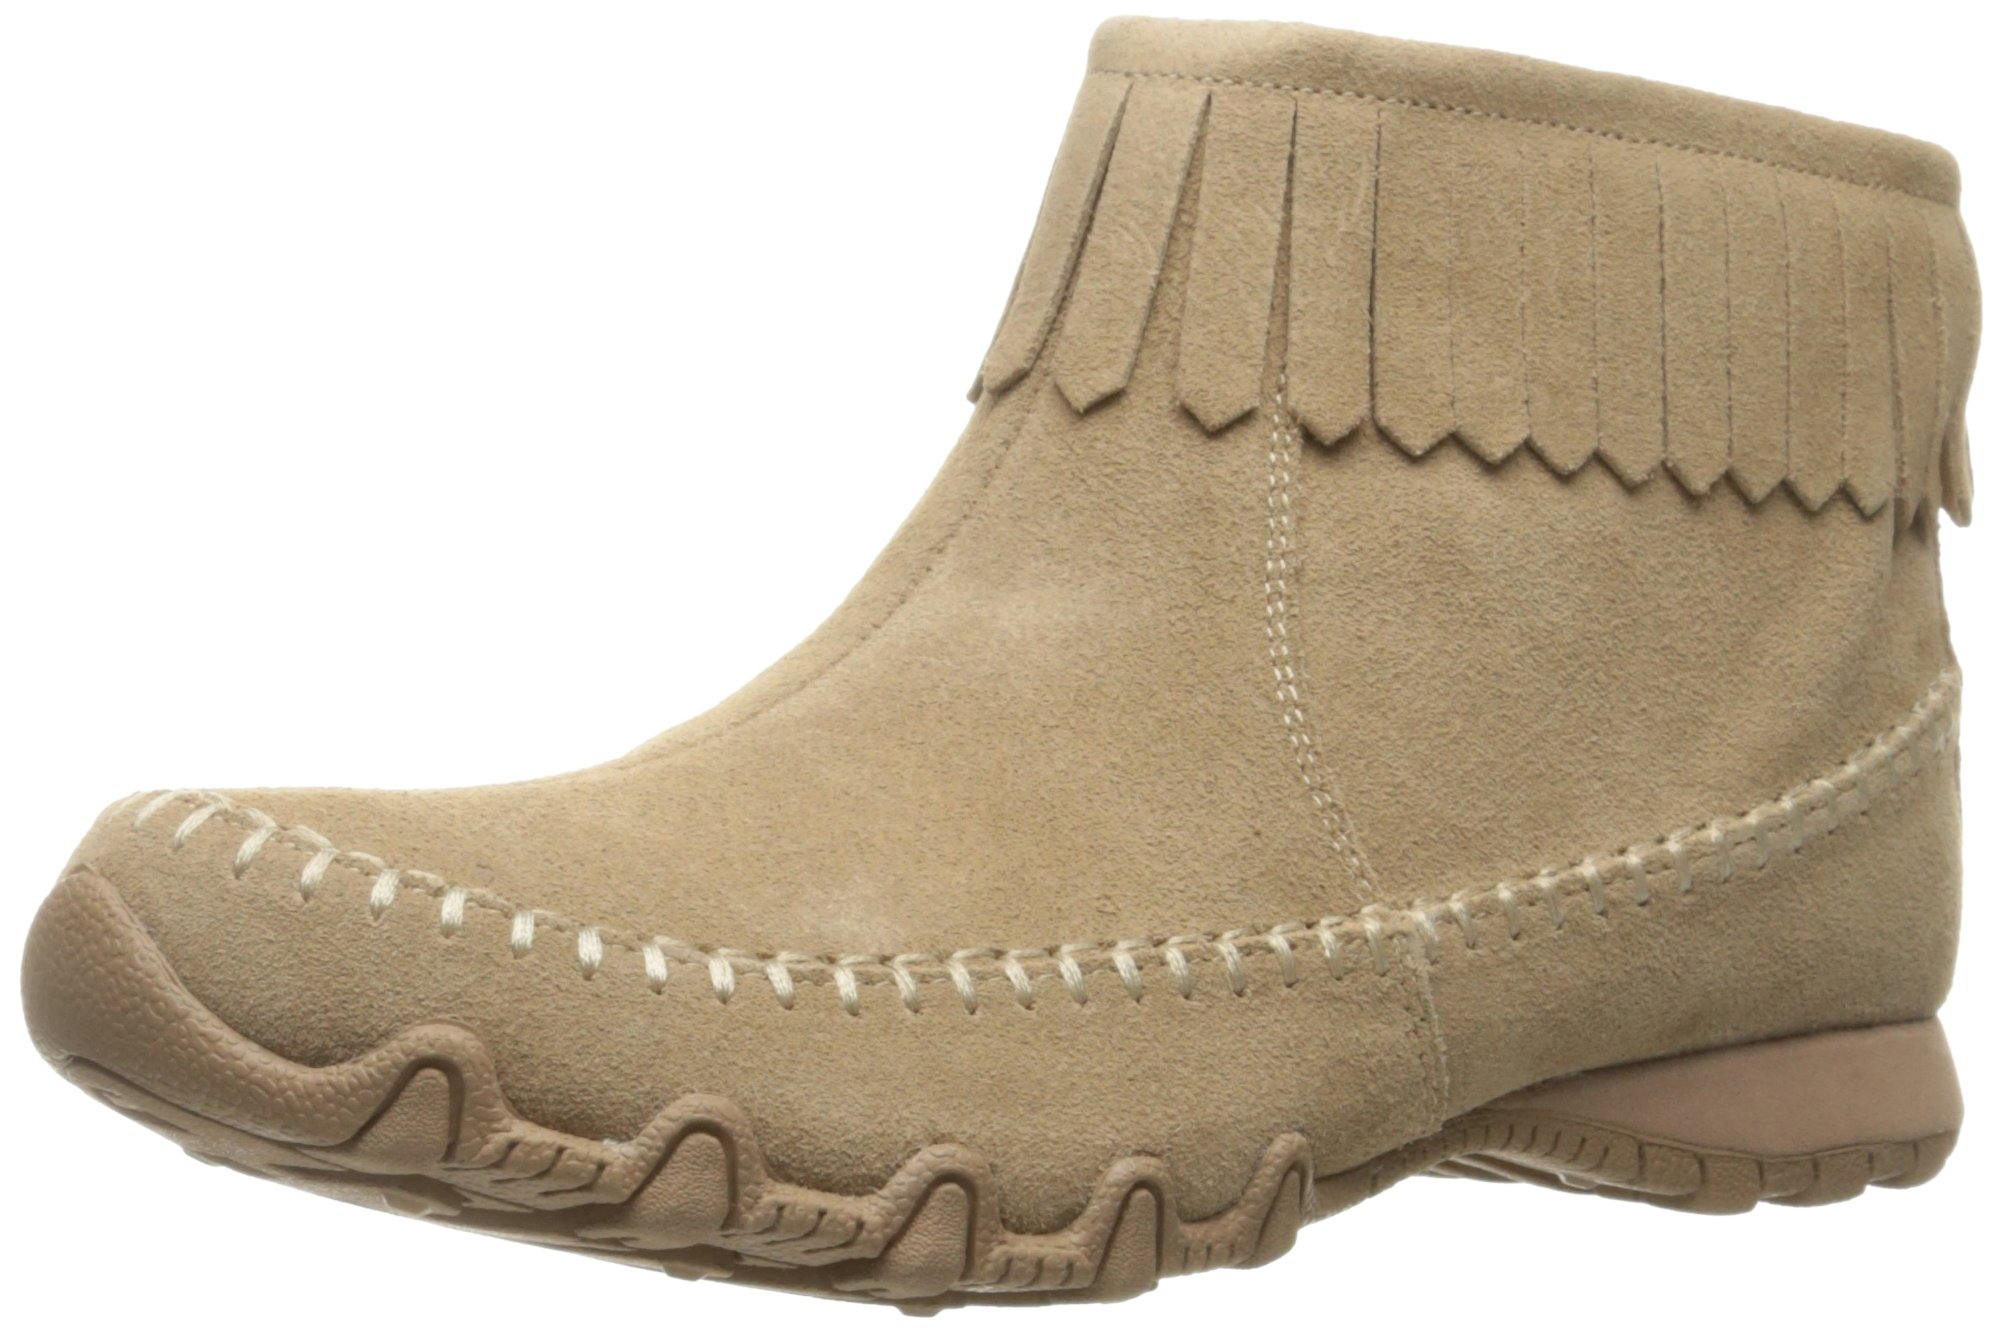 Skechers Women's Bikers-Indian Summer Ankle Bootie, Taupe, 8.5 M US